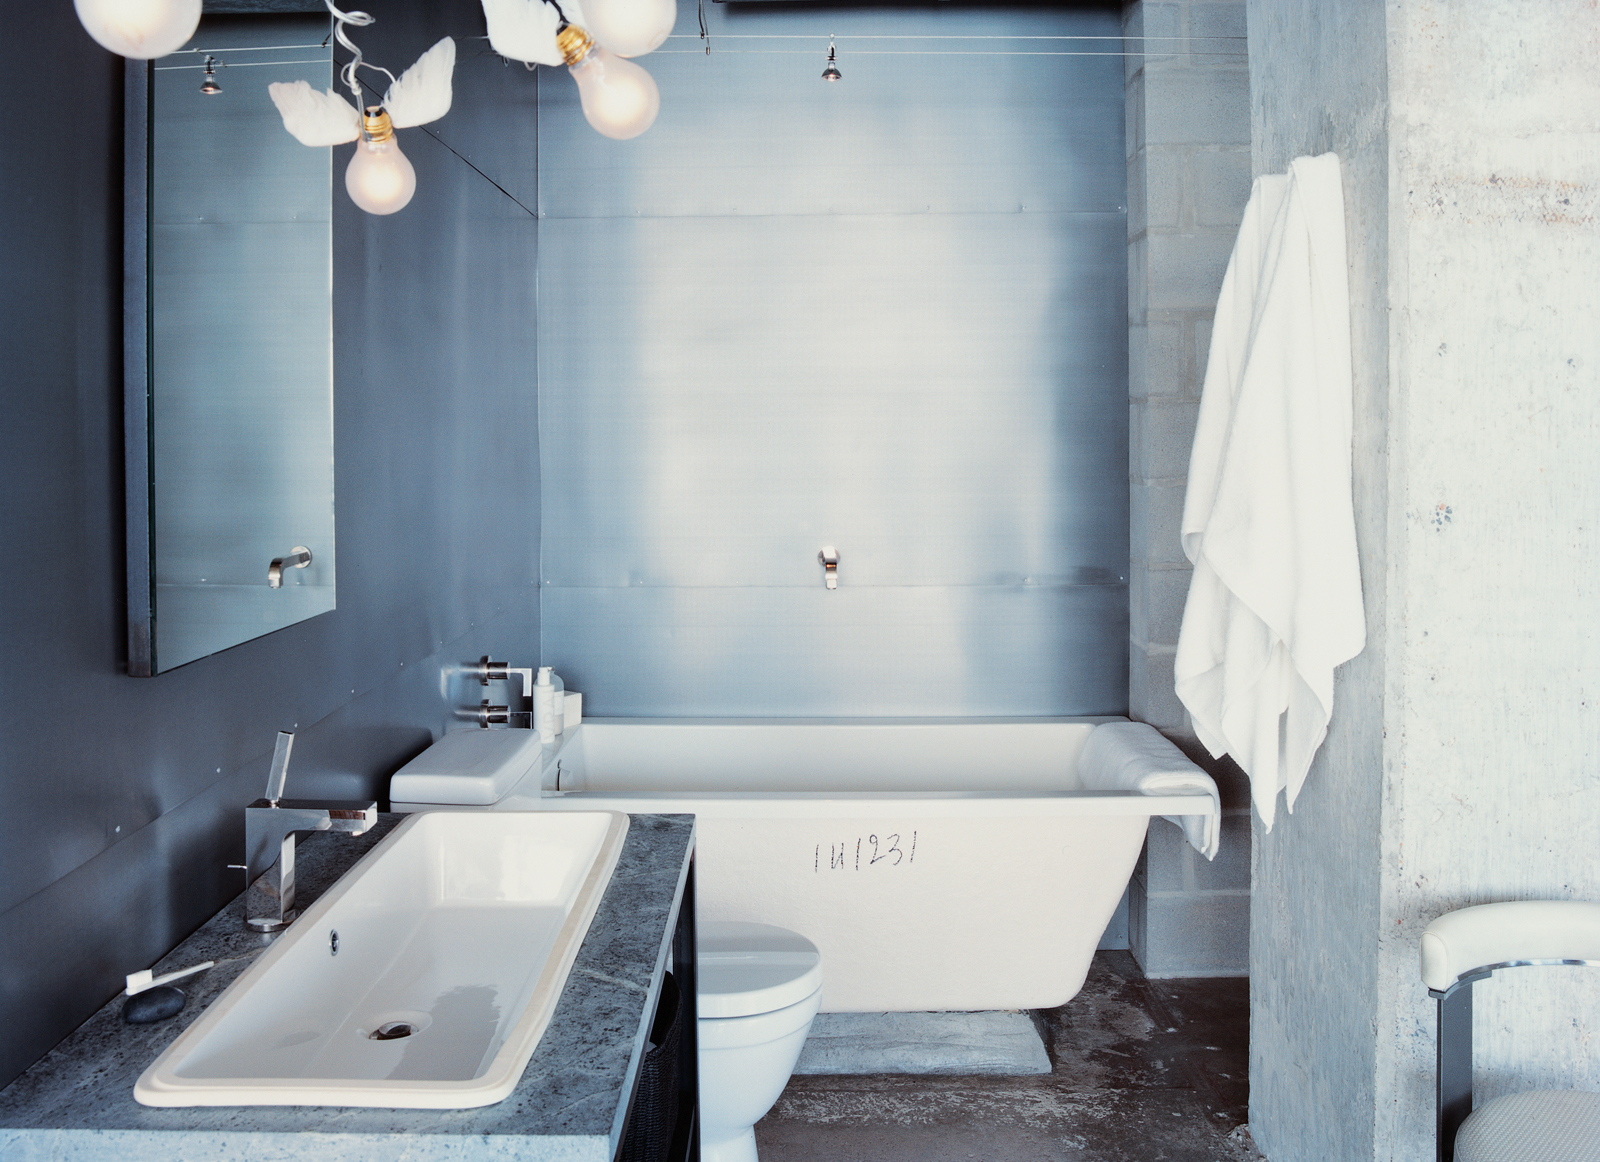 Winged light bulbs, part of an Ingo Maurer fixture, bring levity to Hill's bathroom. The space features a zinc wall by Houston metalworker George Sacaris, who also did the bathroom and kitchen cabinets,